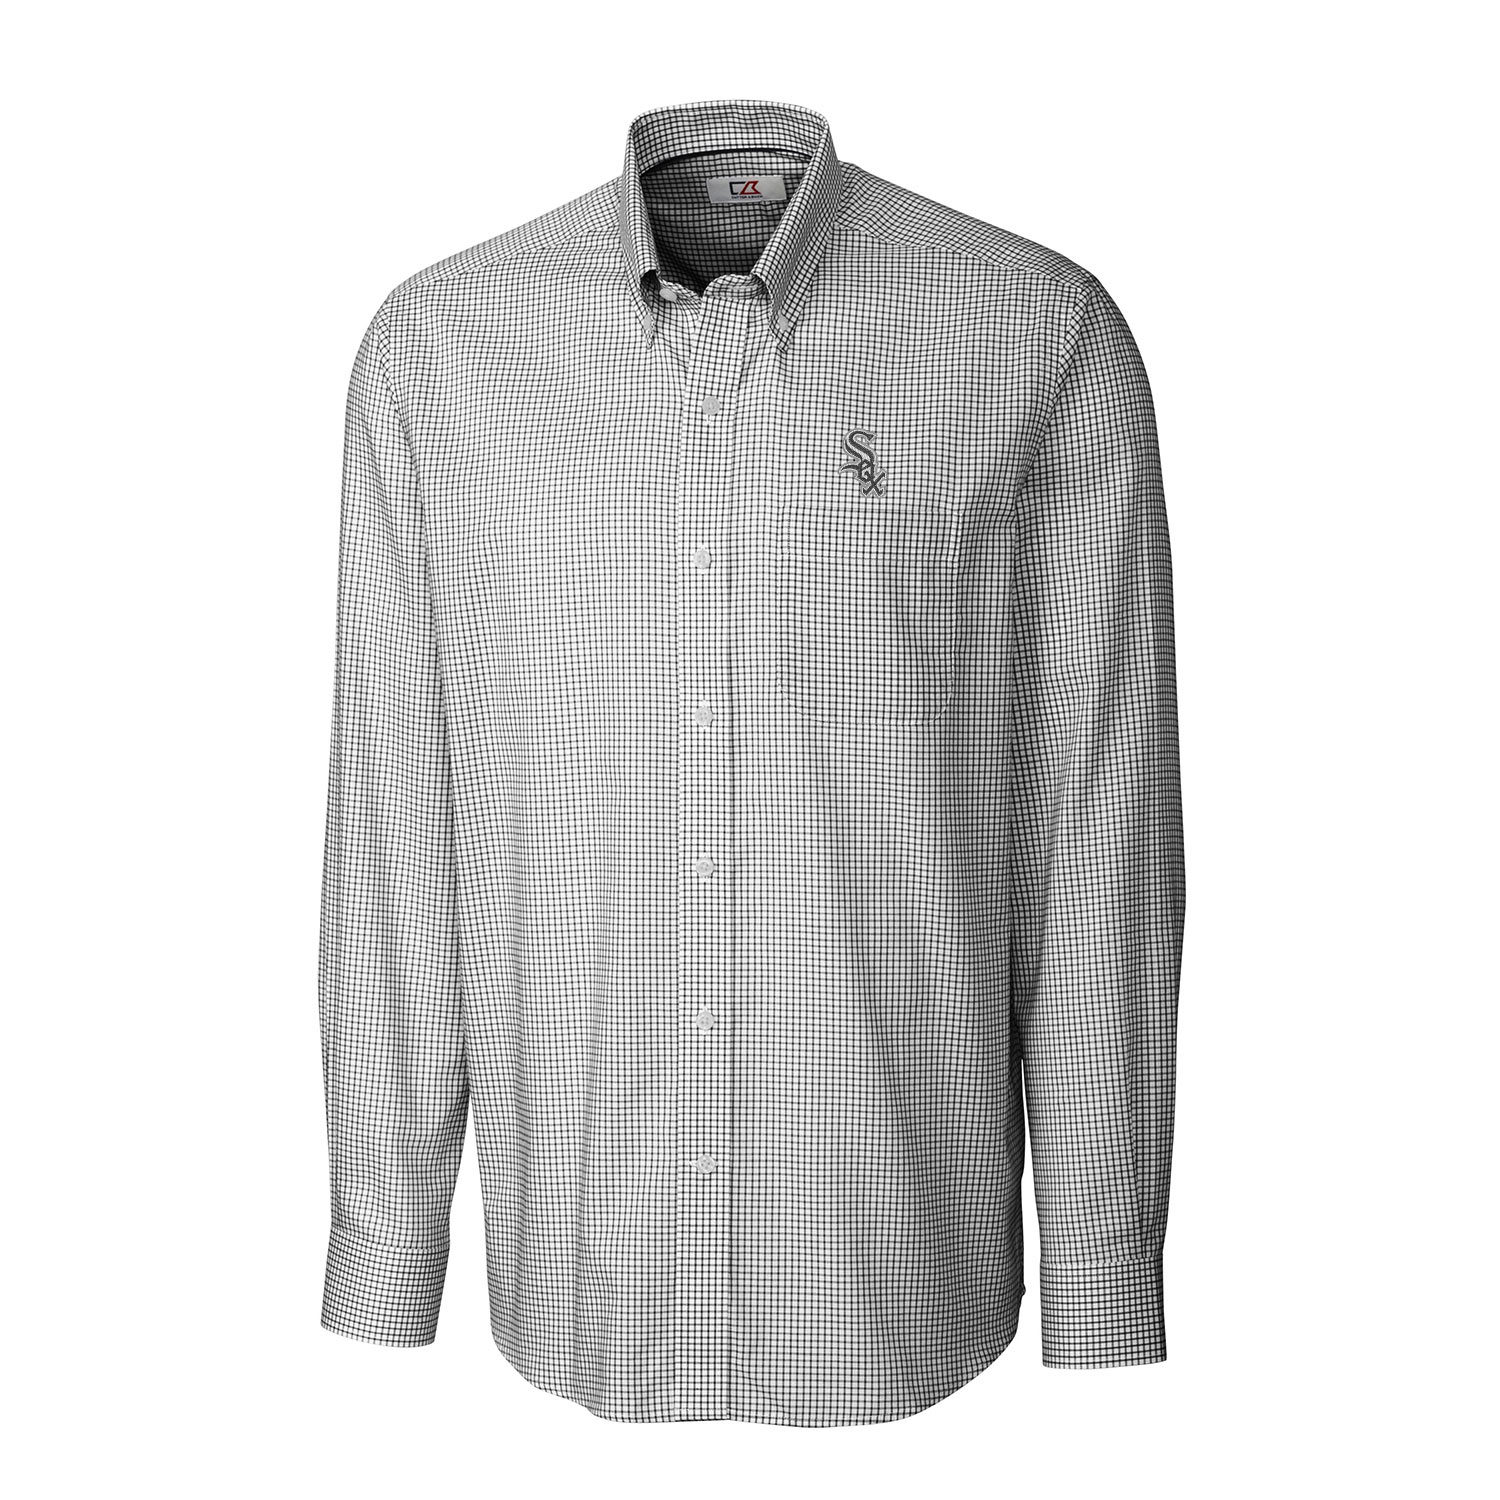 Chicago White Sox Cutter & Buck Tattersall Woven Long Sleeve Button-Down Shirt - Black